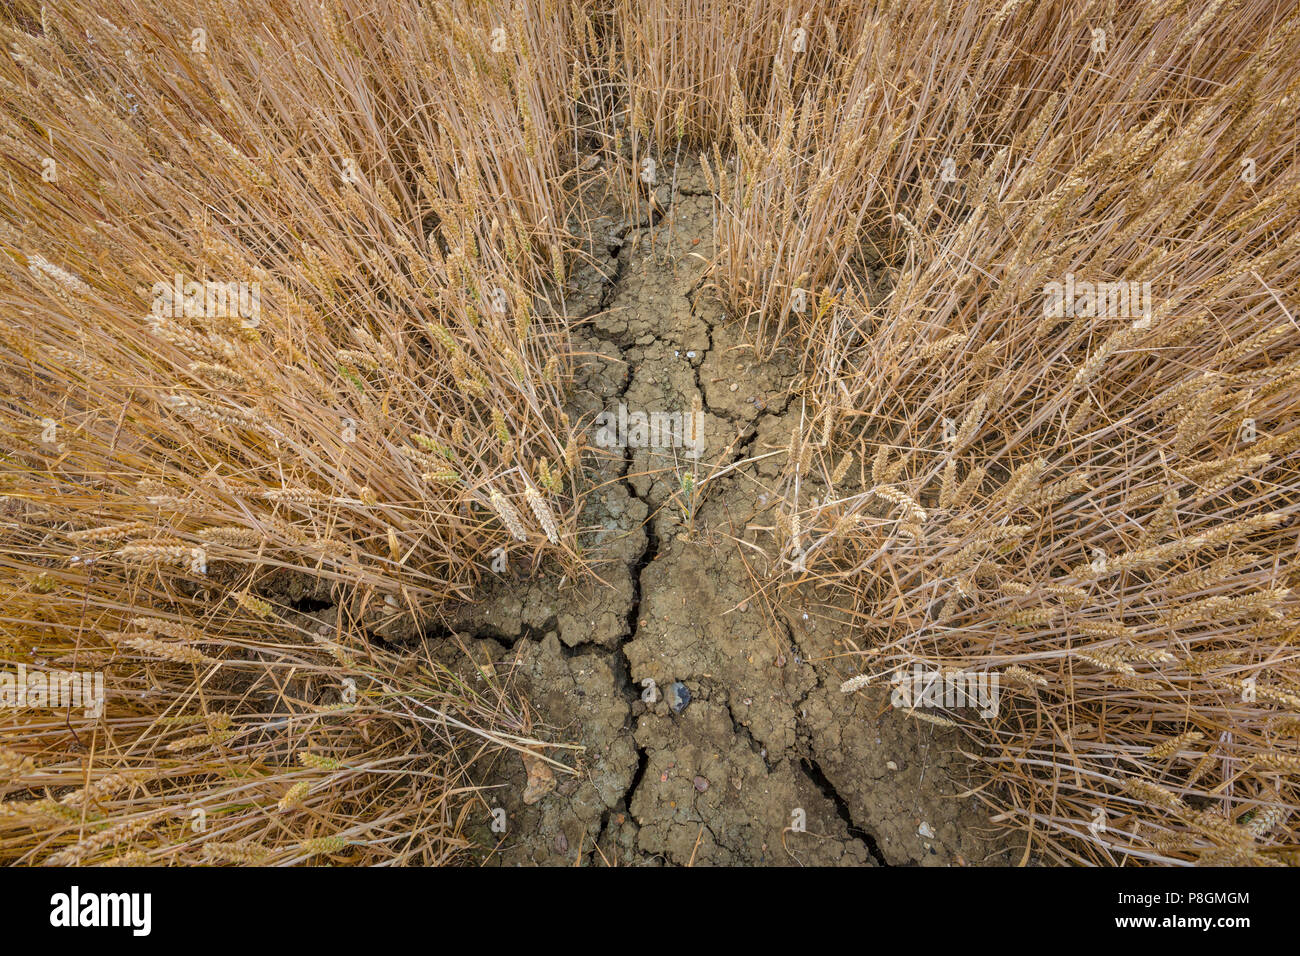 Wheatfield in Suffolk, UK.. Very dry parched soil after over a month without rain. - Stock Image